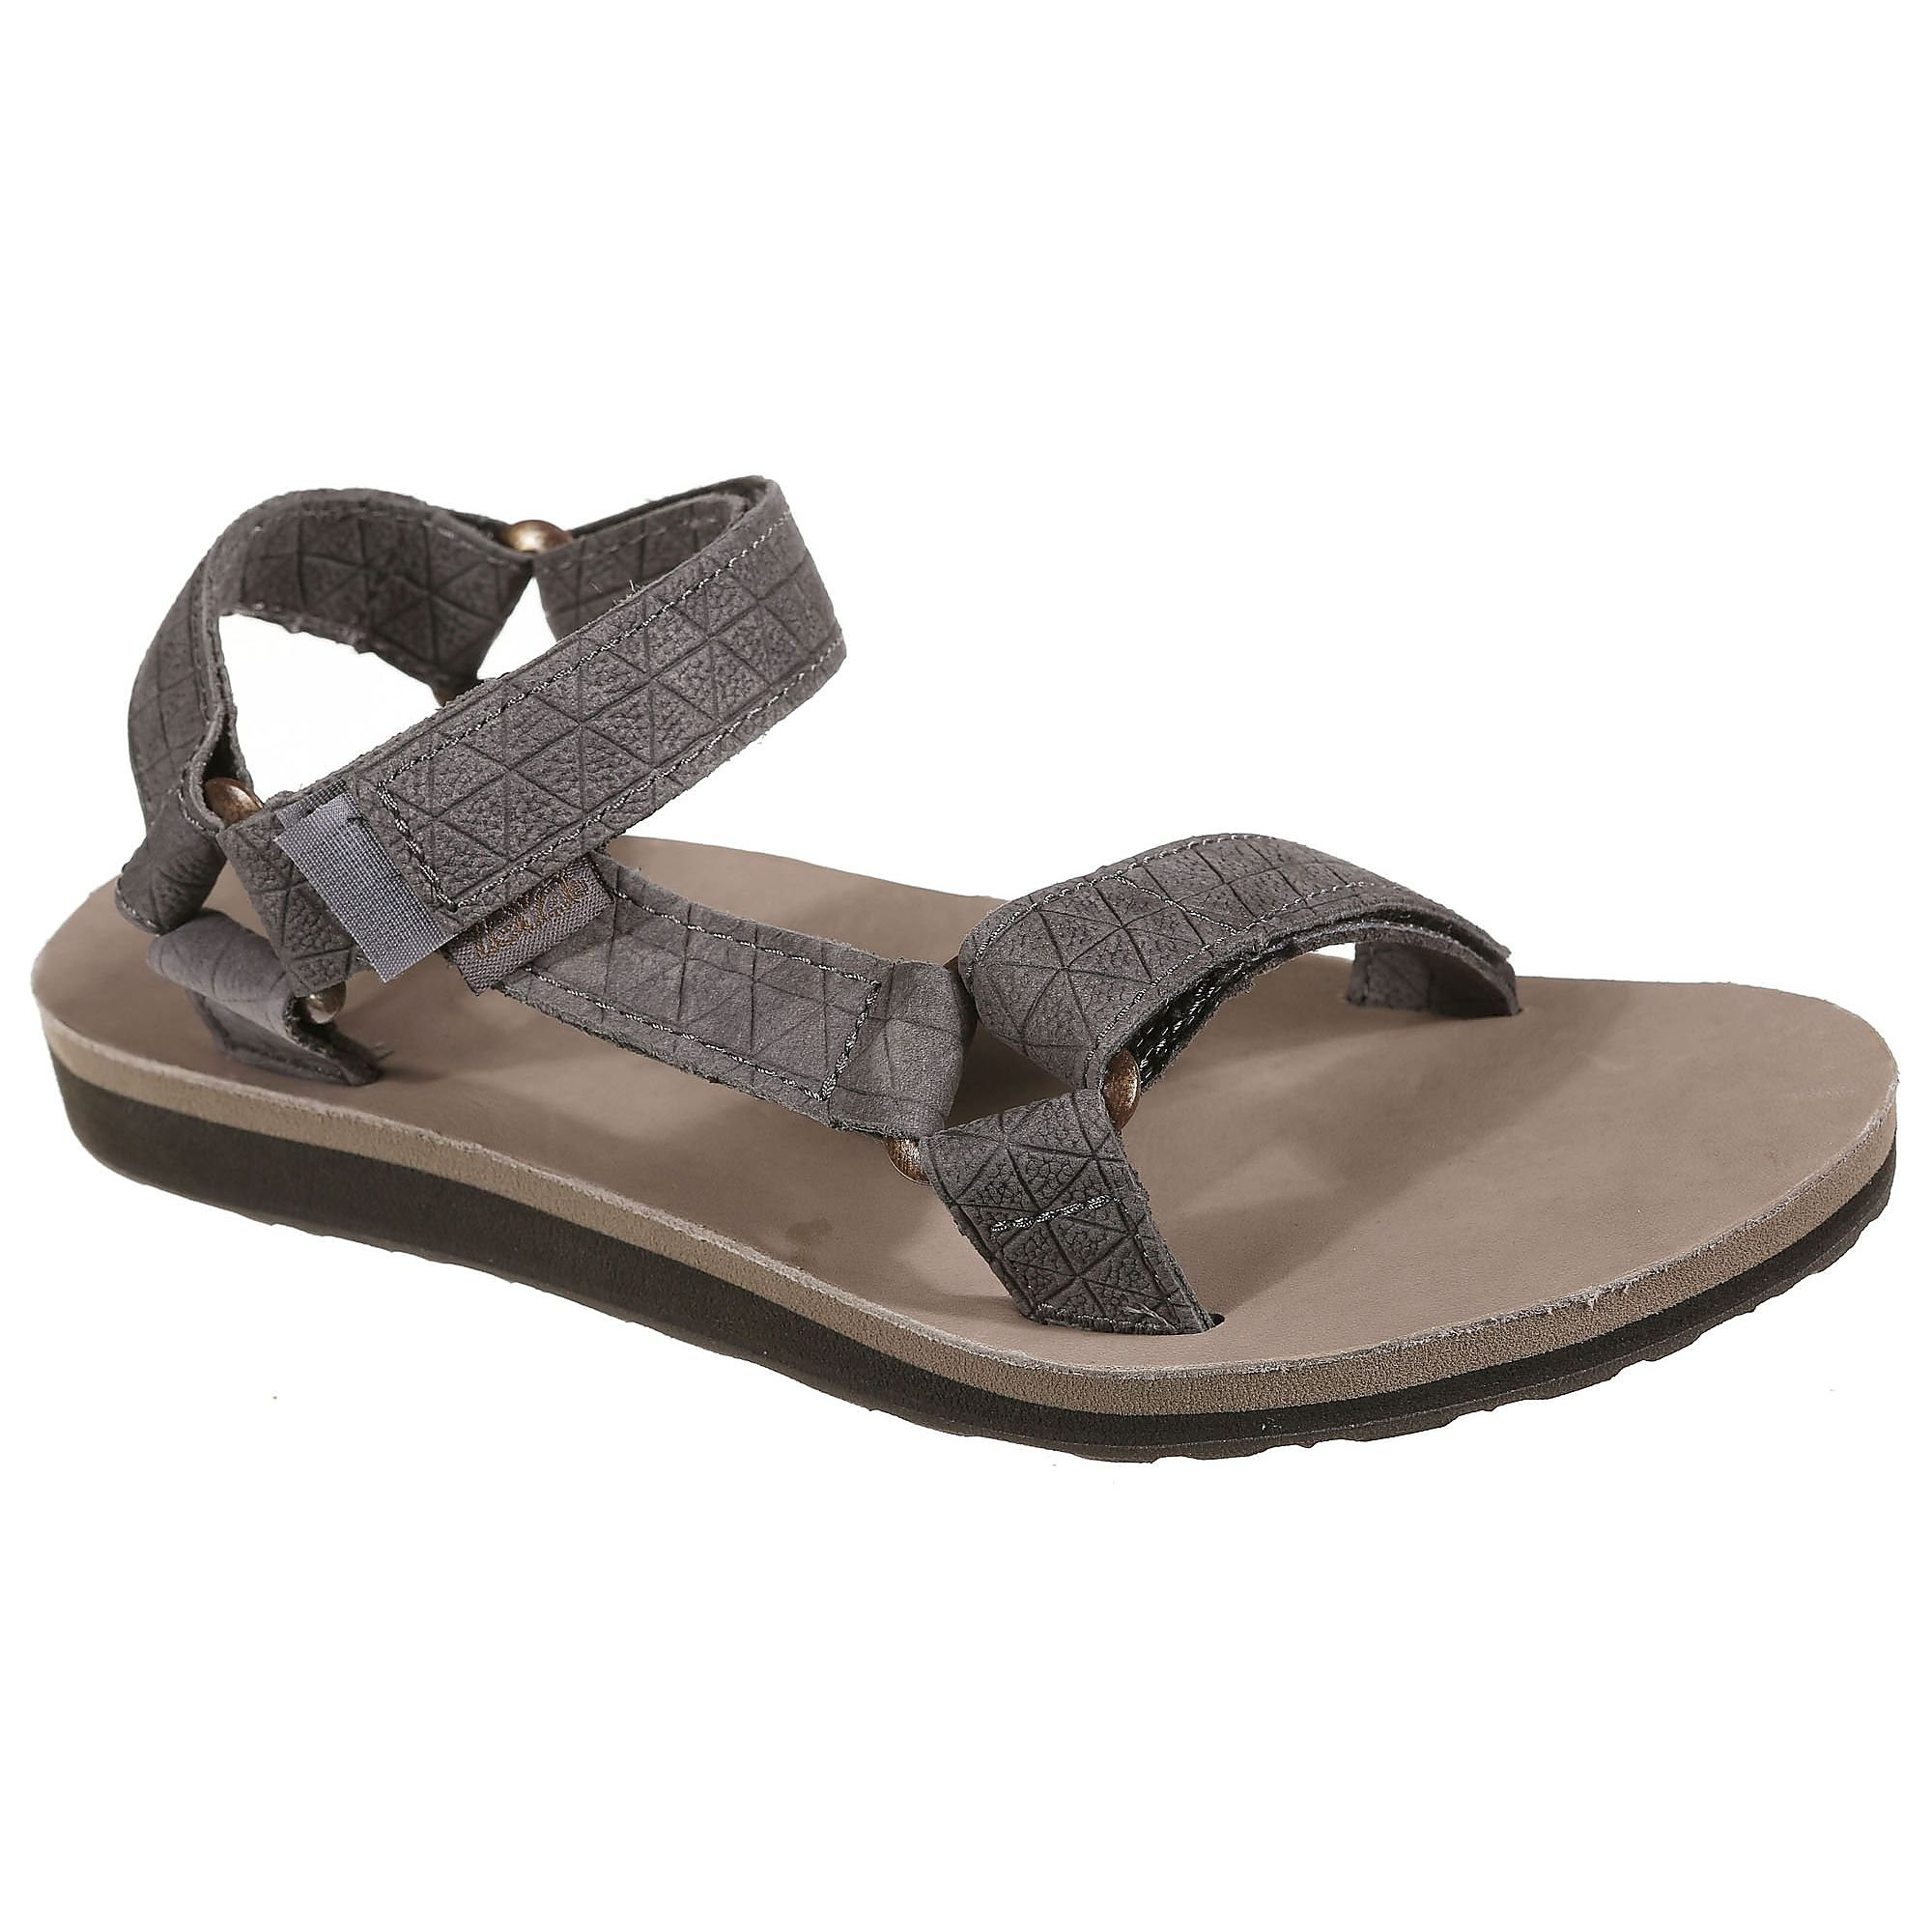 TEVA ORIGINAL SANDAL LEATHER